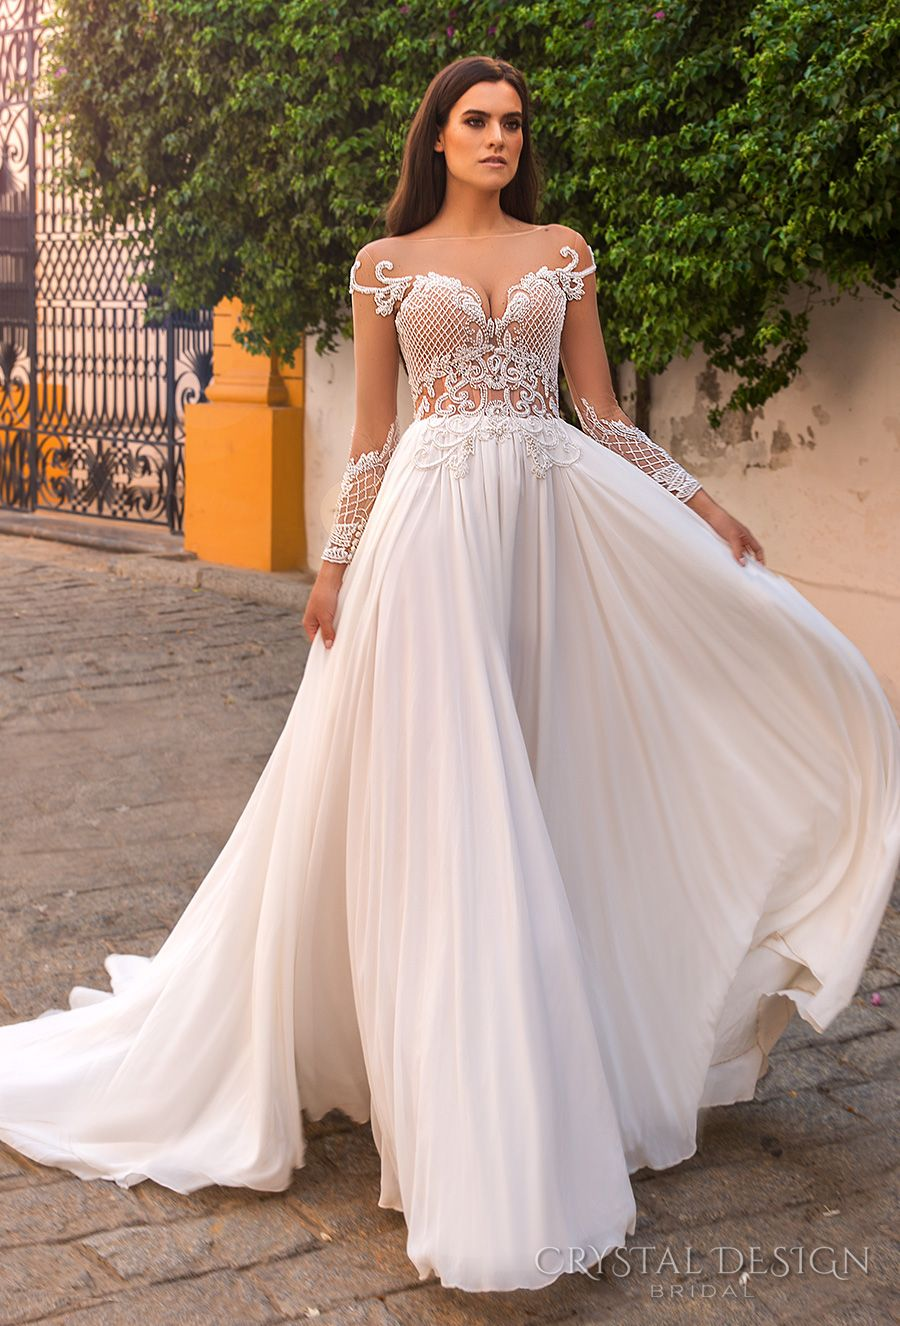 Beautiful wedding dresses from the 2017 crystal design collection beautiful wedding dresses from the 2017 crystal design collection sevilla bridal campaign ombrellifo Gallery